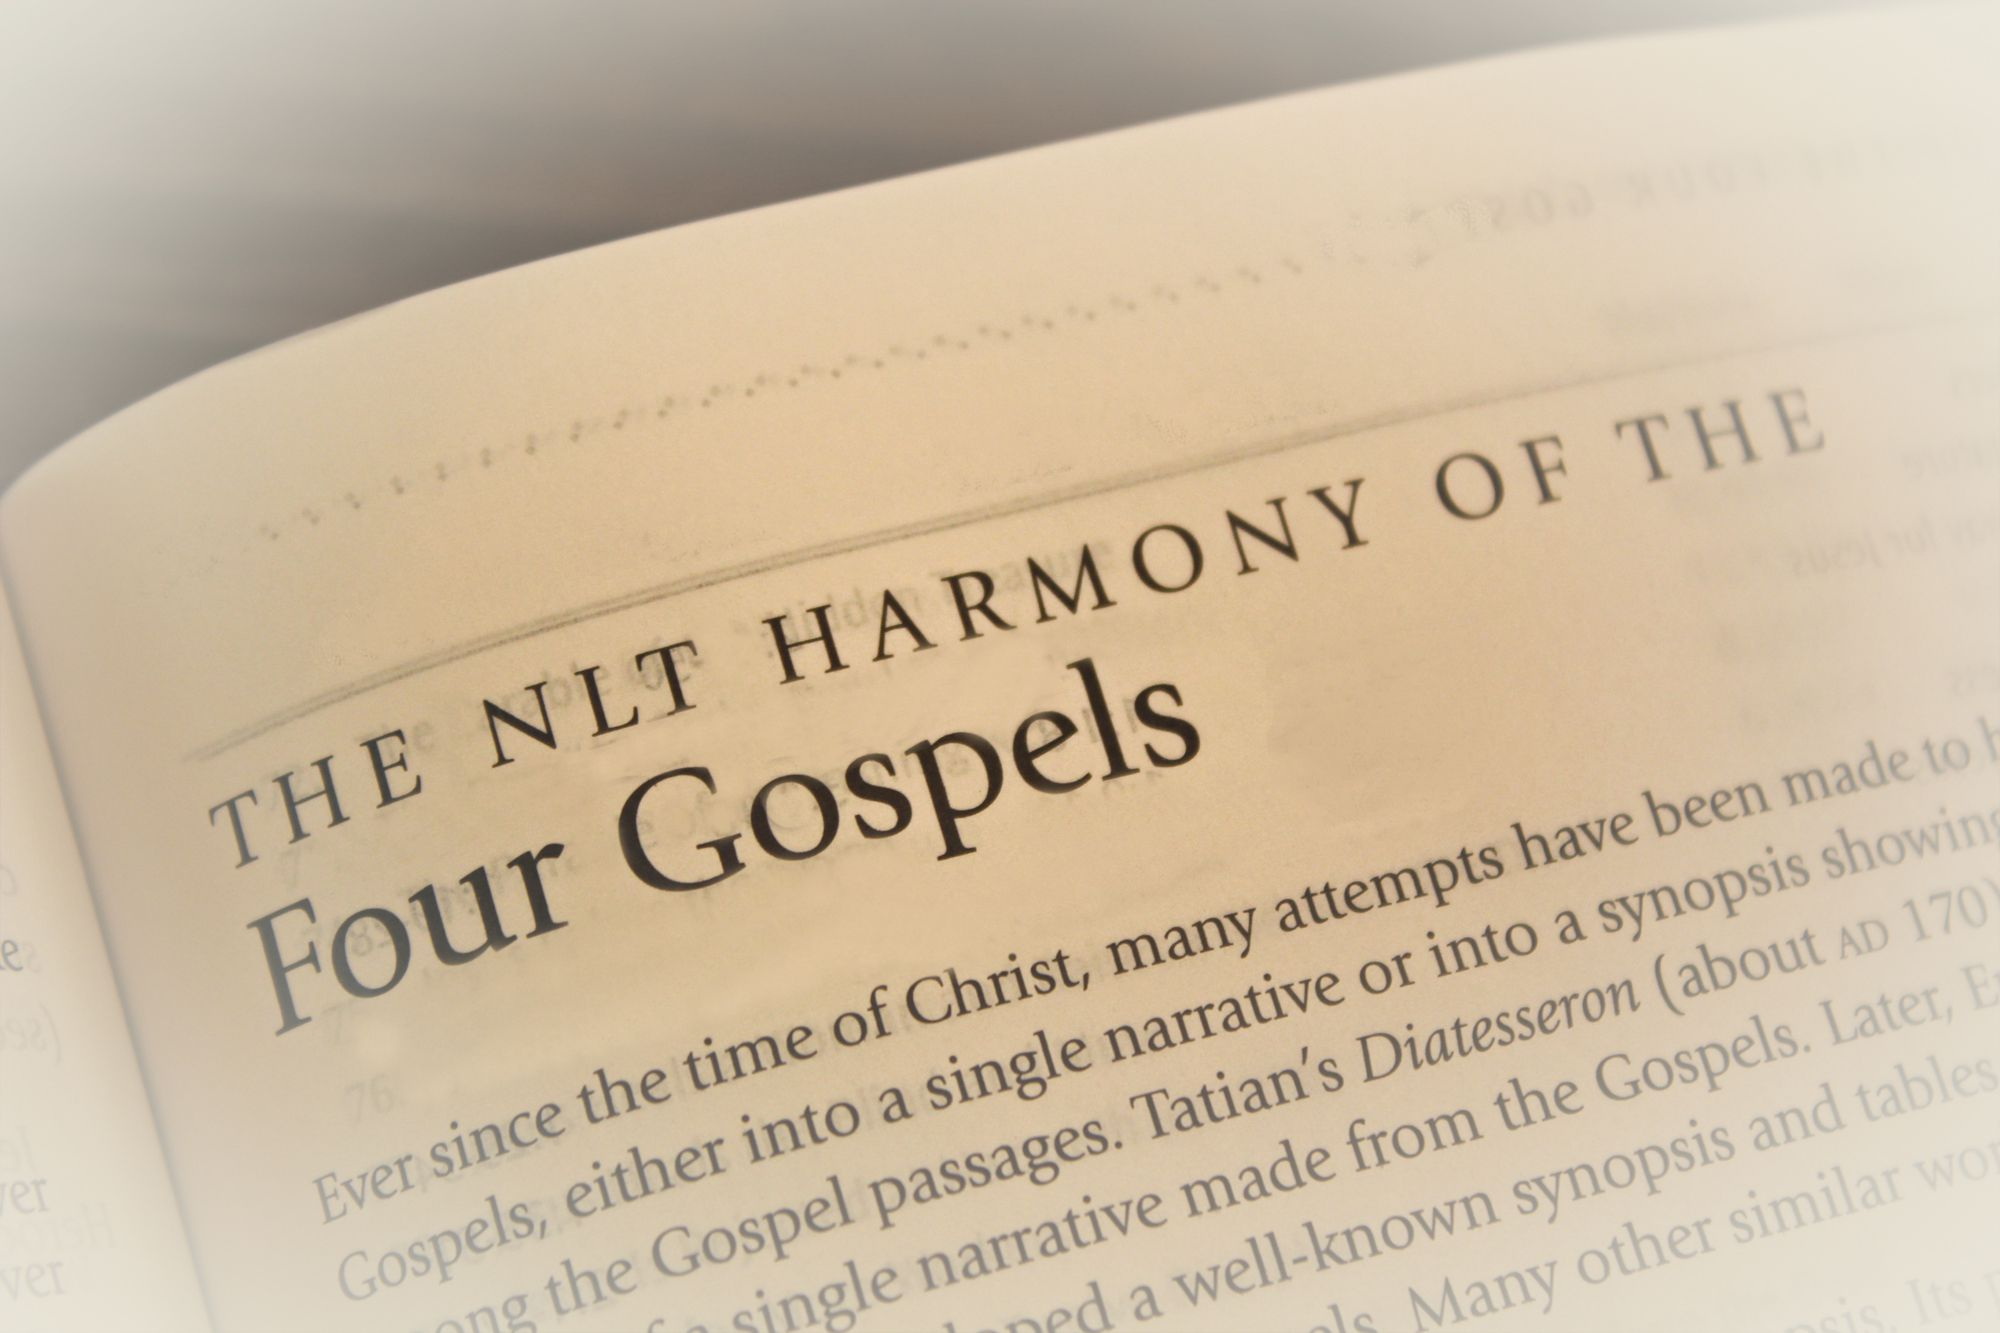 what are the synoptic gospels?